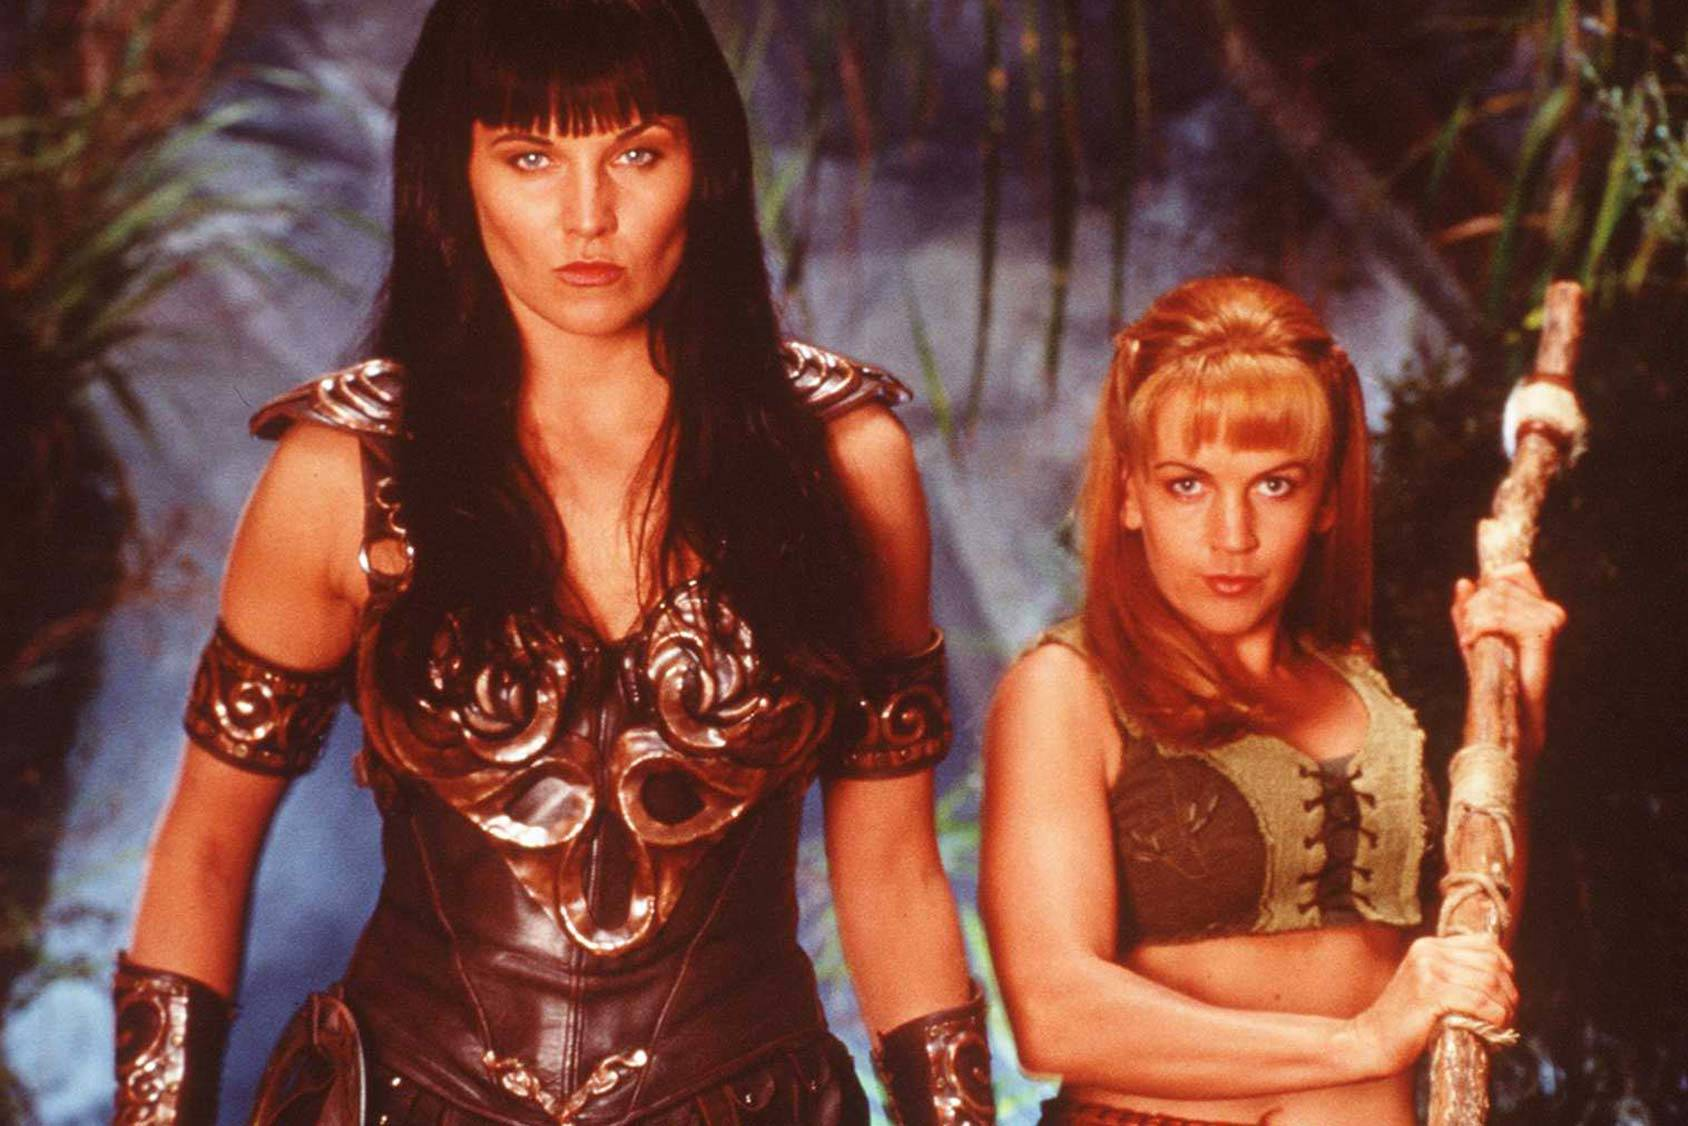 Xena, the mighty Warrior Princess, with her sidekick Gabrielle, Getty Images.